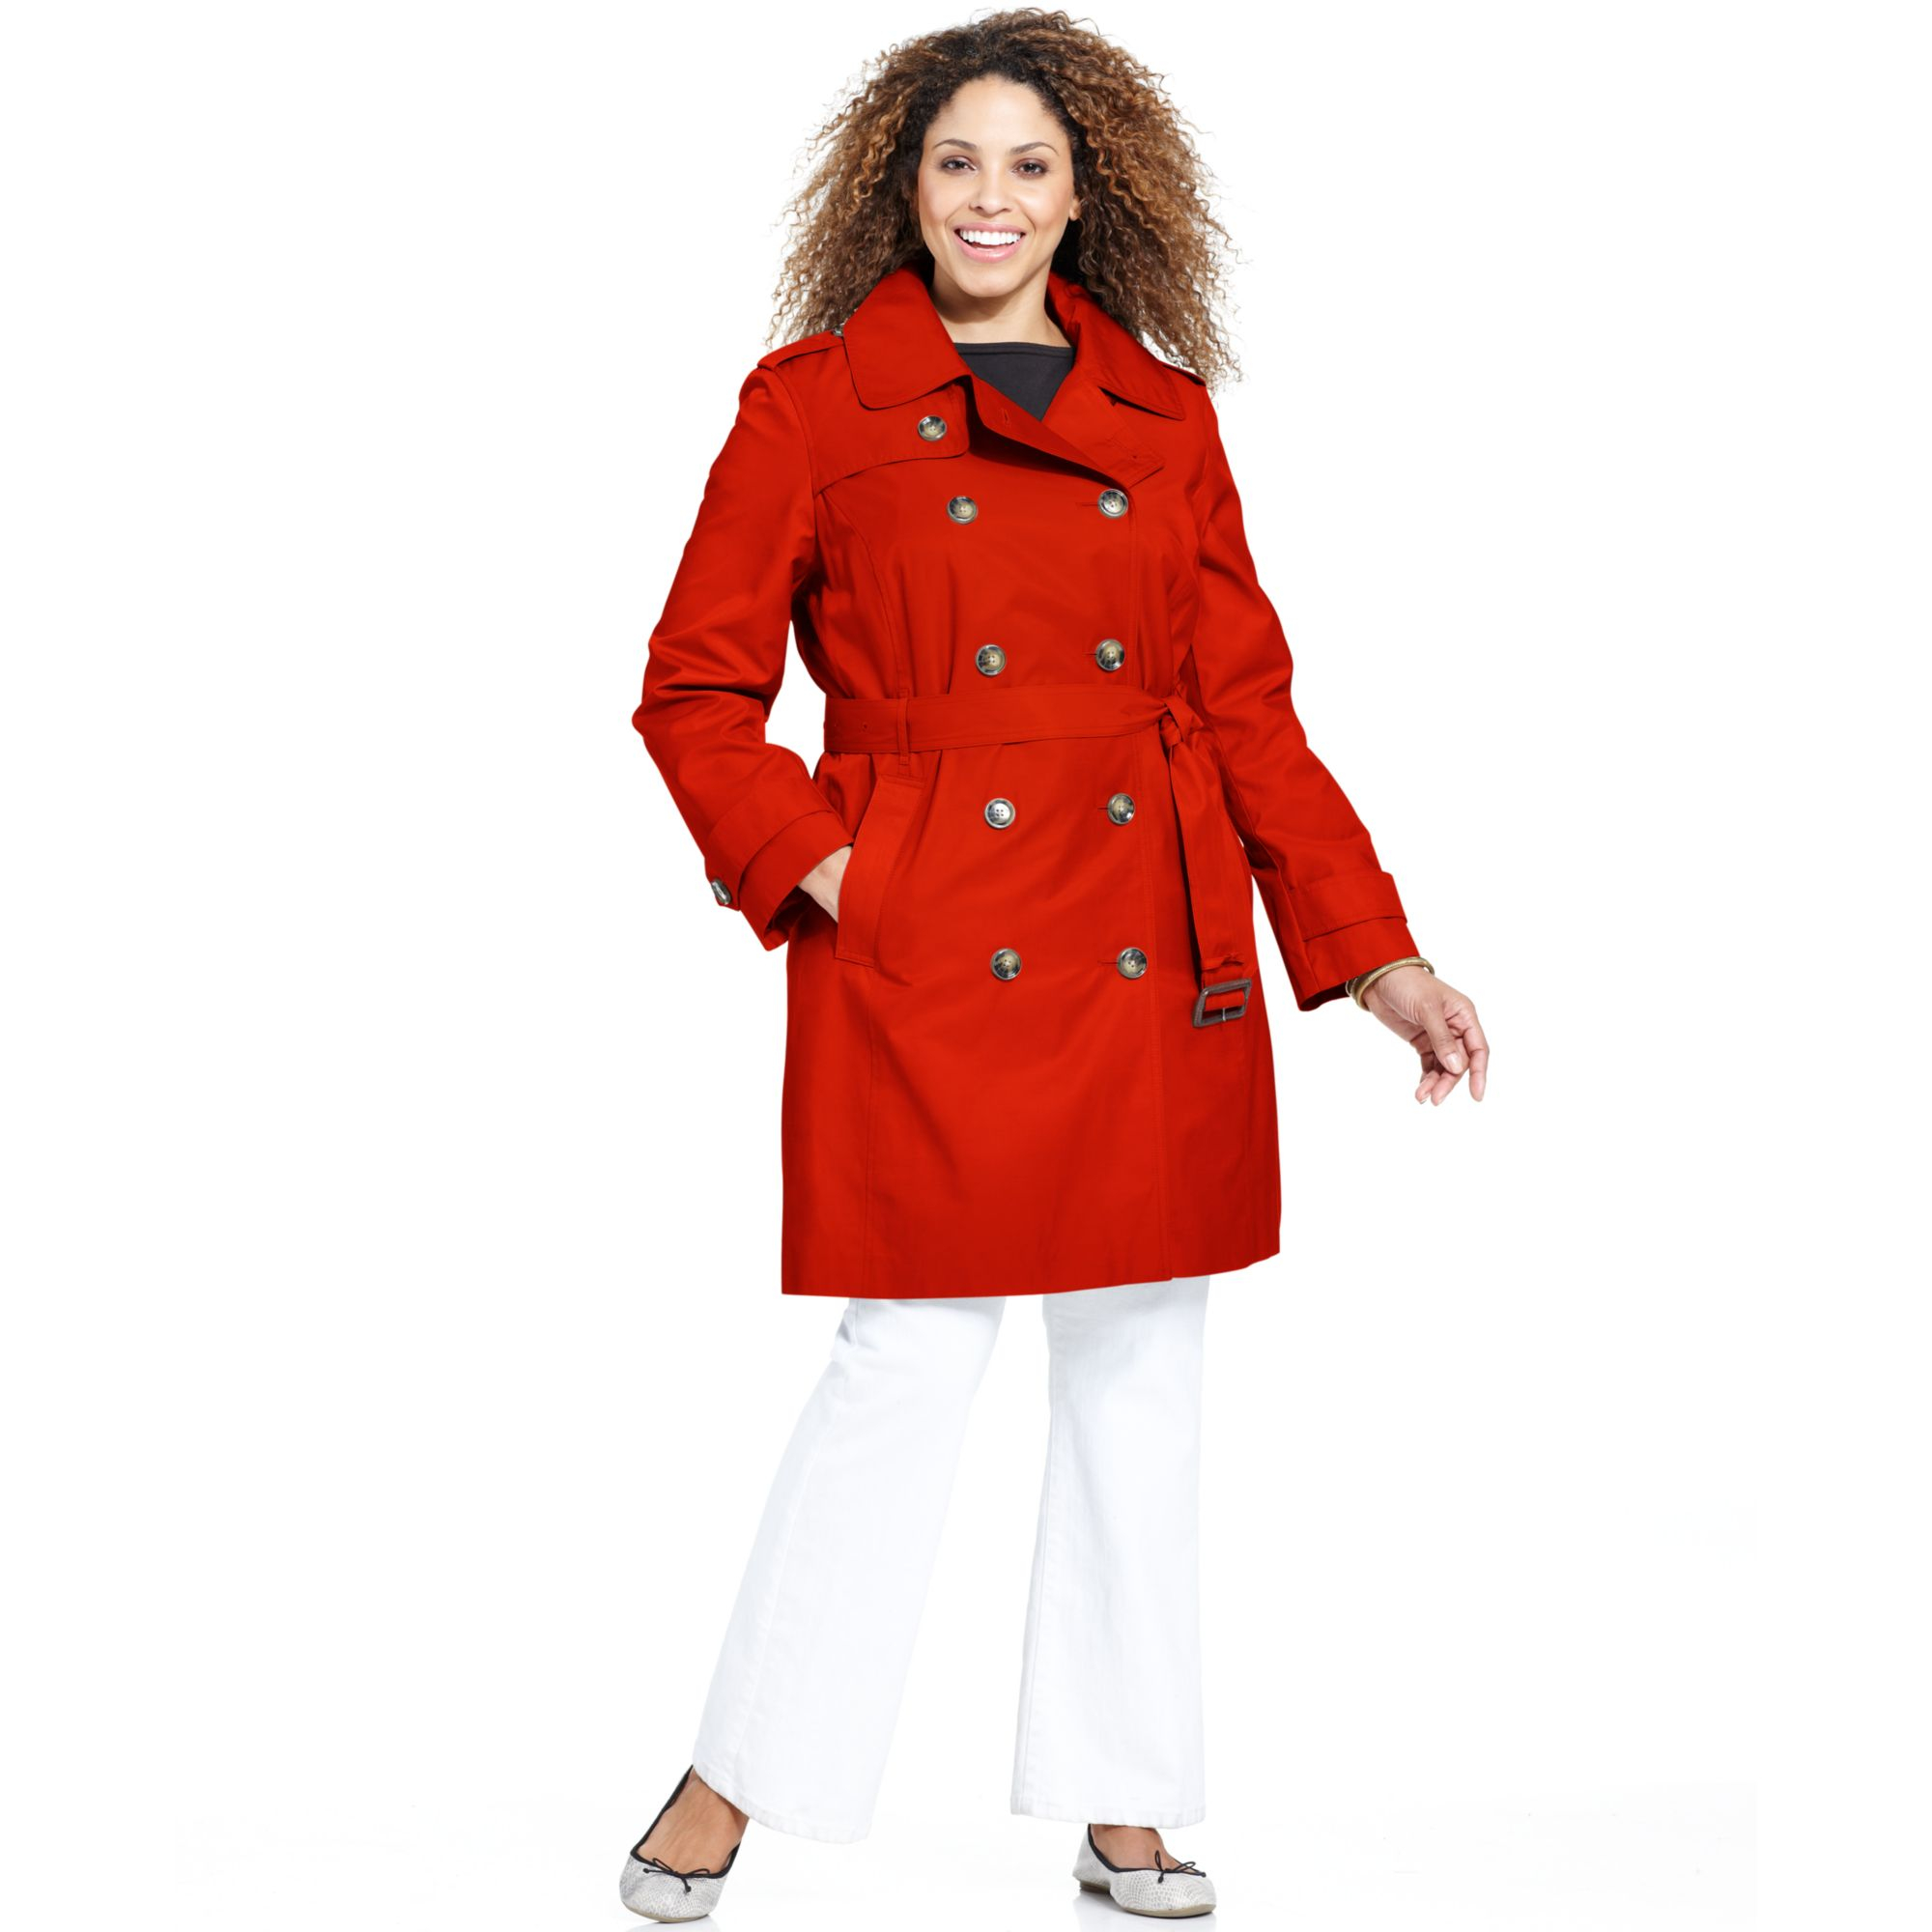 00471c083f3 Lyst - London Fog Plus Size Hooded Belted Trench Coat in Red